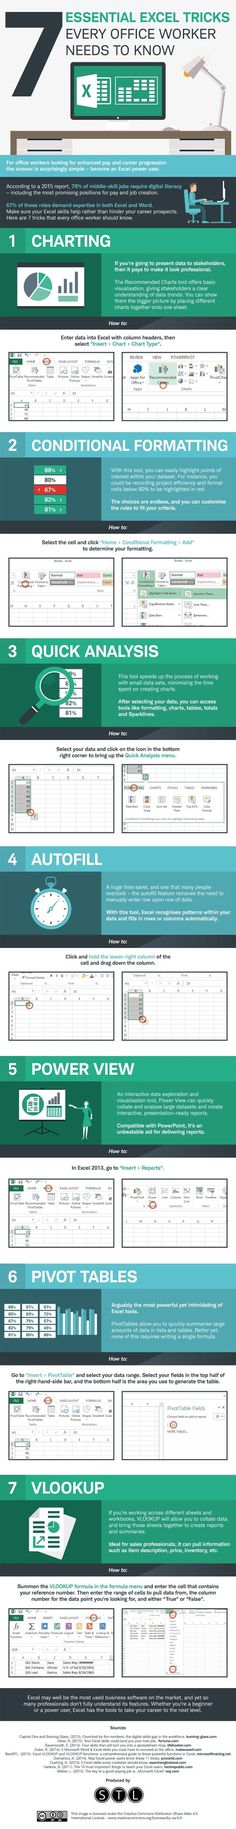 7 Microsoft Excel Tips for Work - The Muse: Here are seven Microsoft Excel tips…